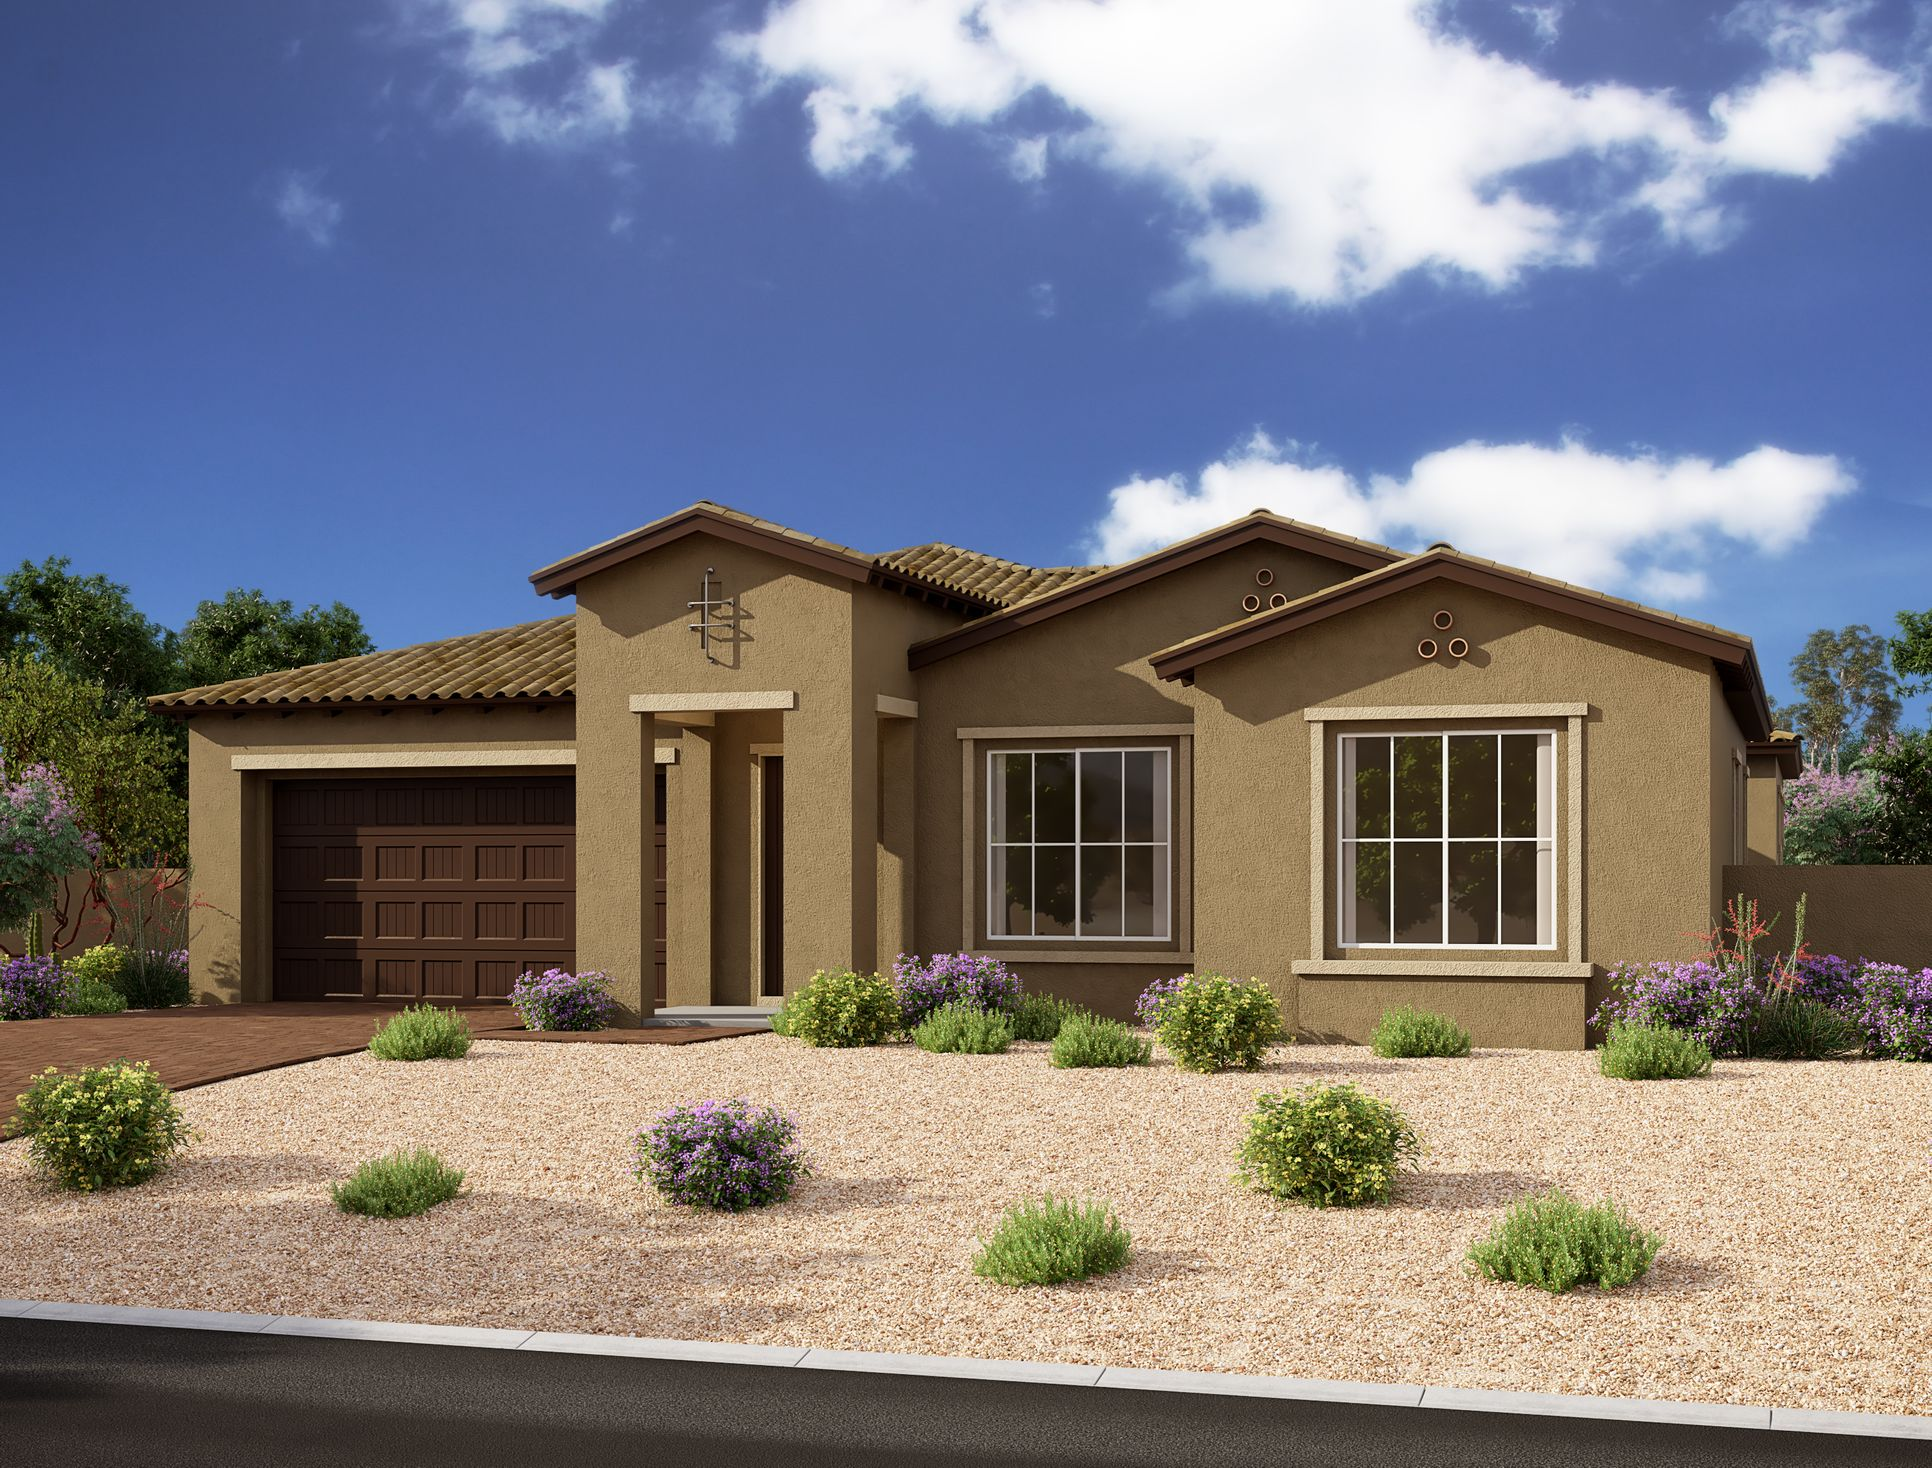 Exterior:Estates at Eastmark - Juniper Elevation Image 2